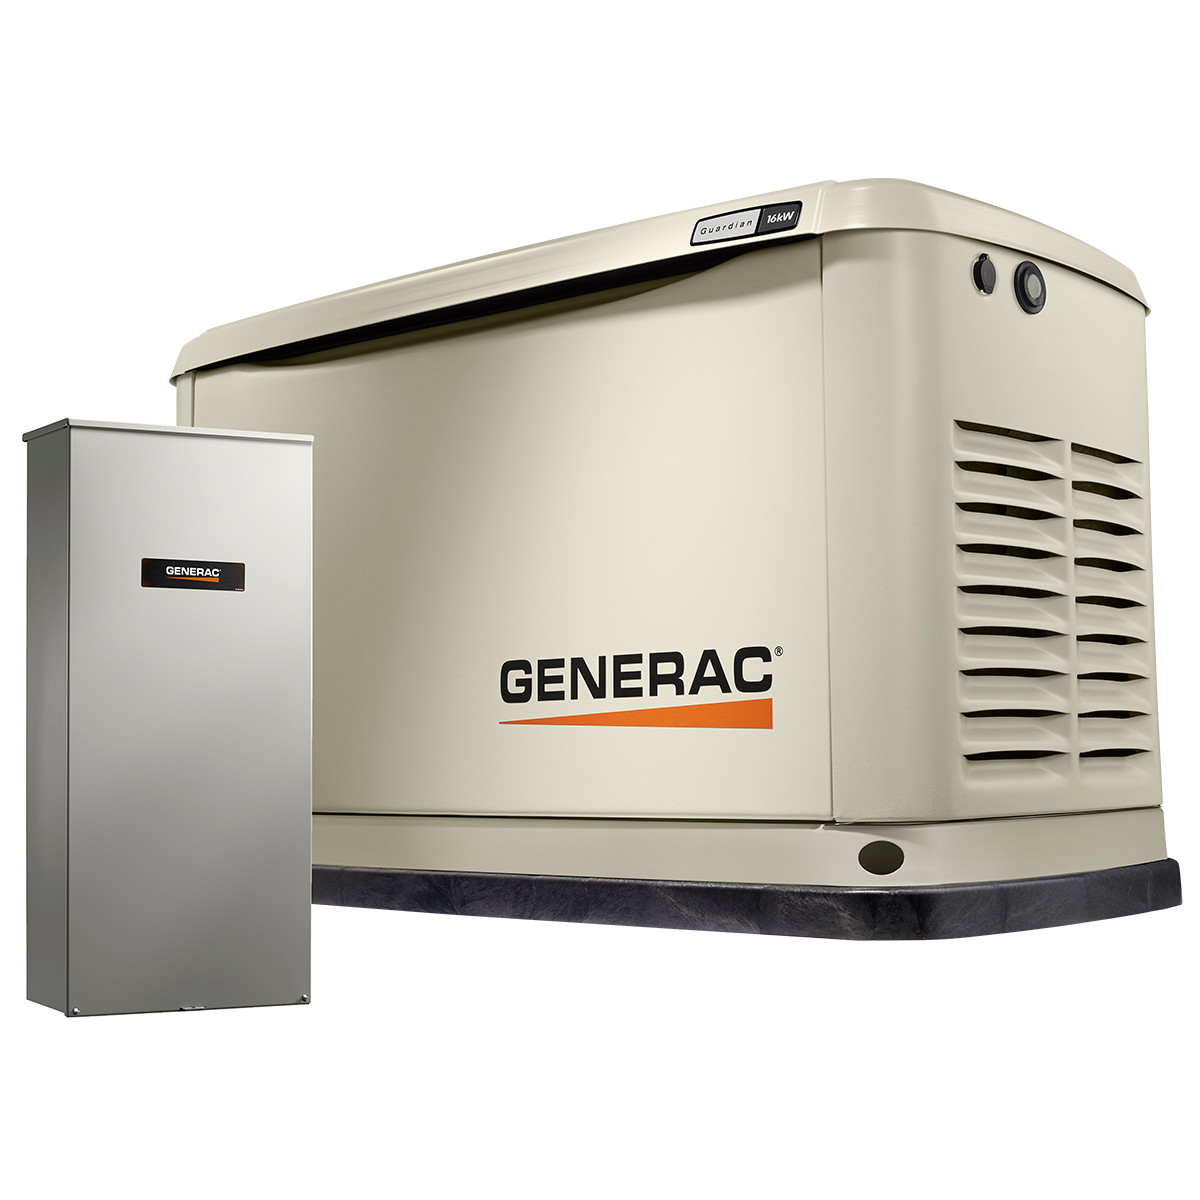 medium resolution of generac 70361 16kw guardian generator with wi fi 100a 16 circuit transfer switch